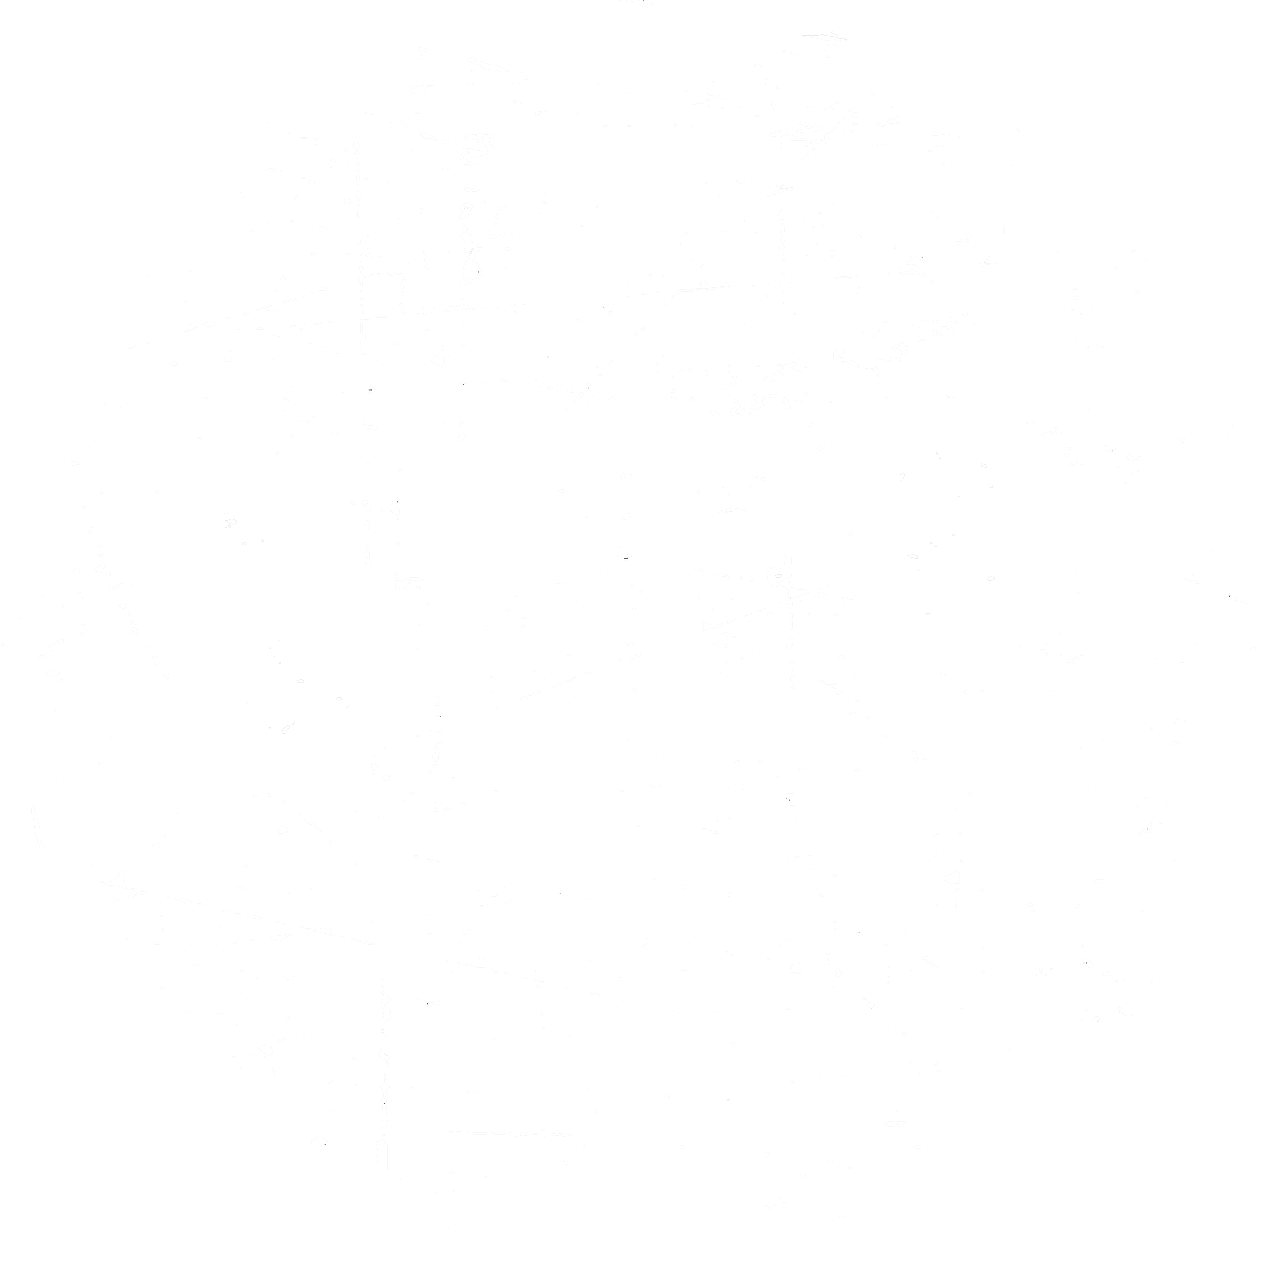 Cap City Beer Fest